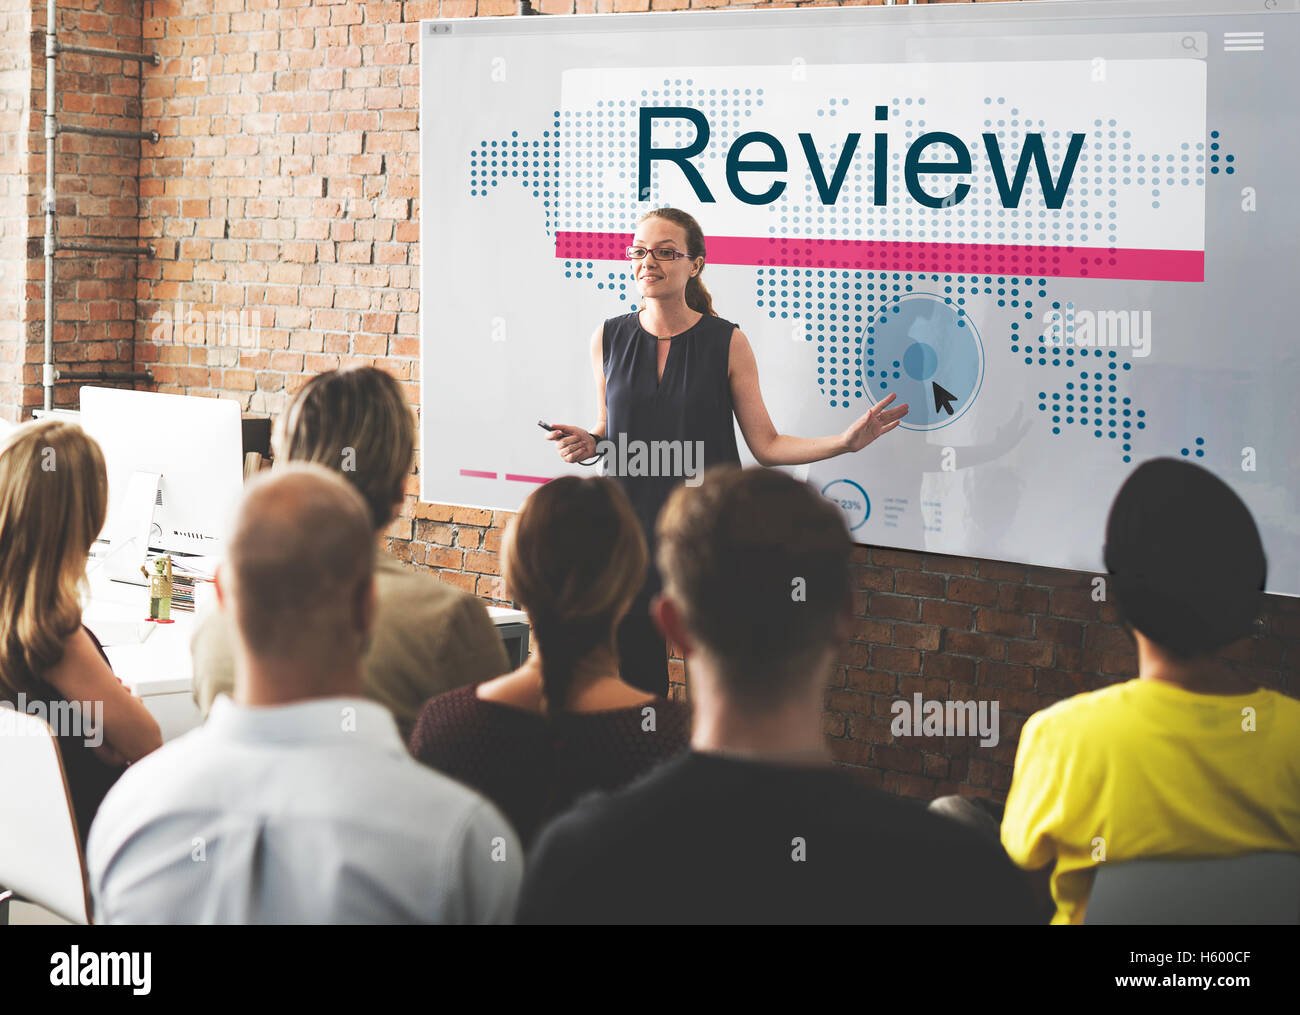 Review Audit Auditing Evalutate Report Rethink Concept - Stock Image